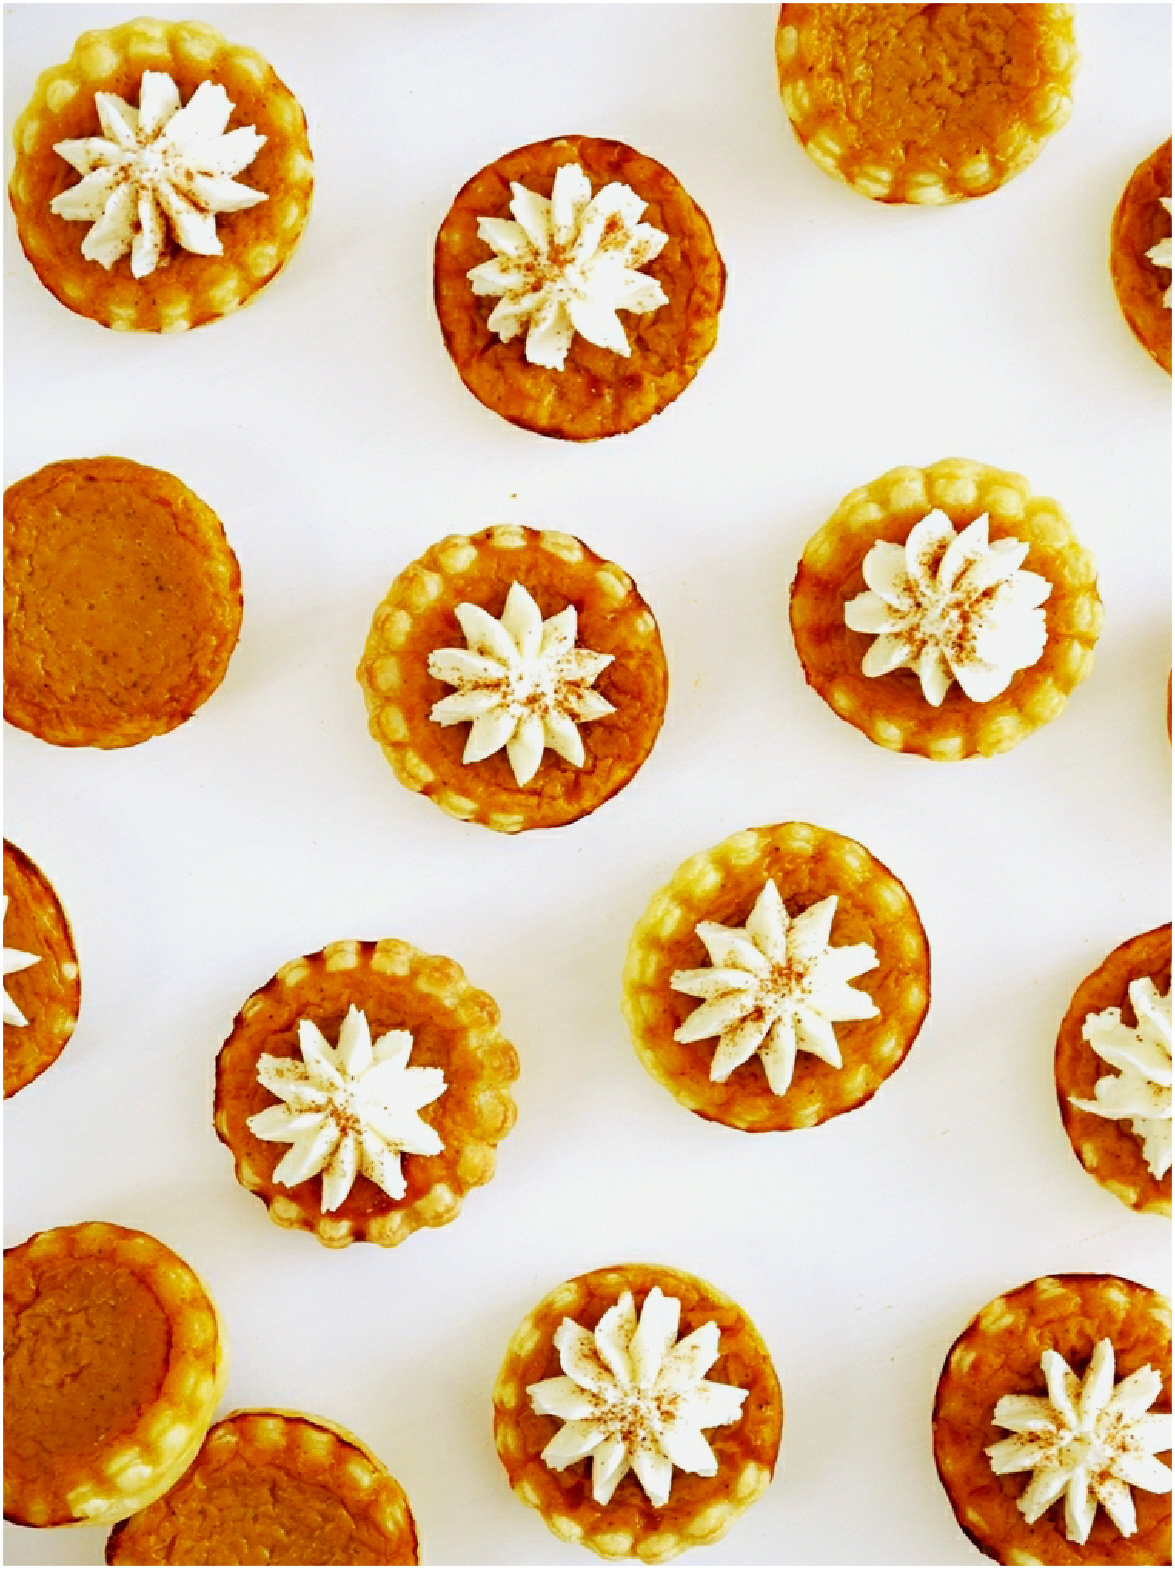 Bite-size Pumpkin Pie Recipe